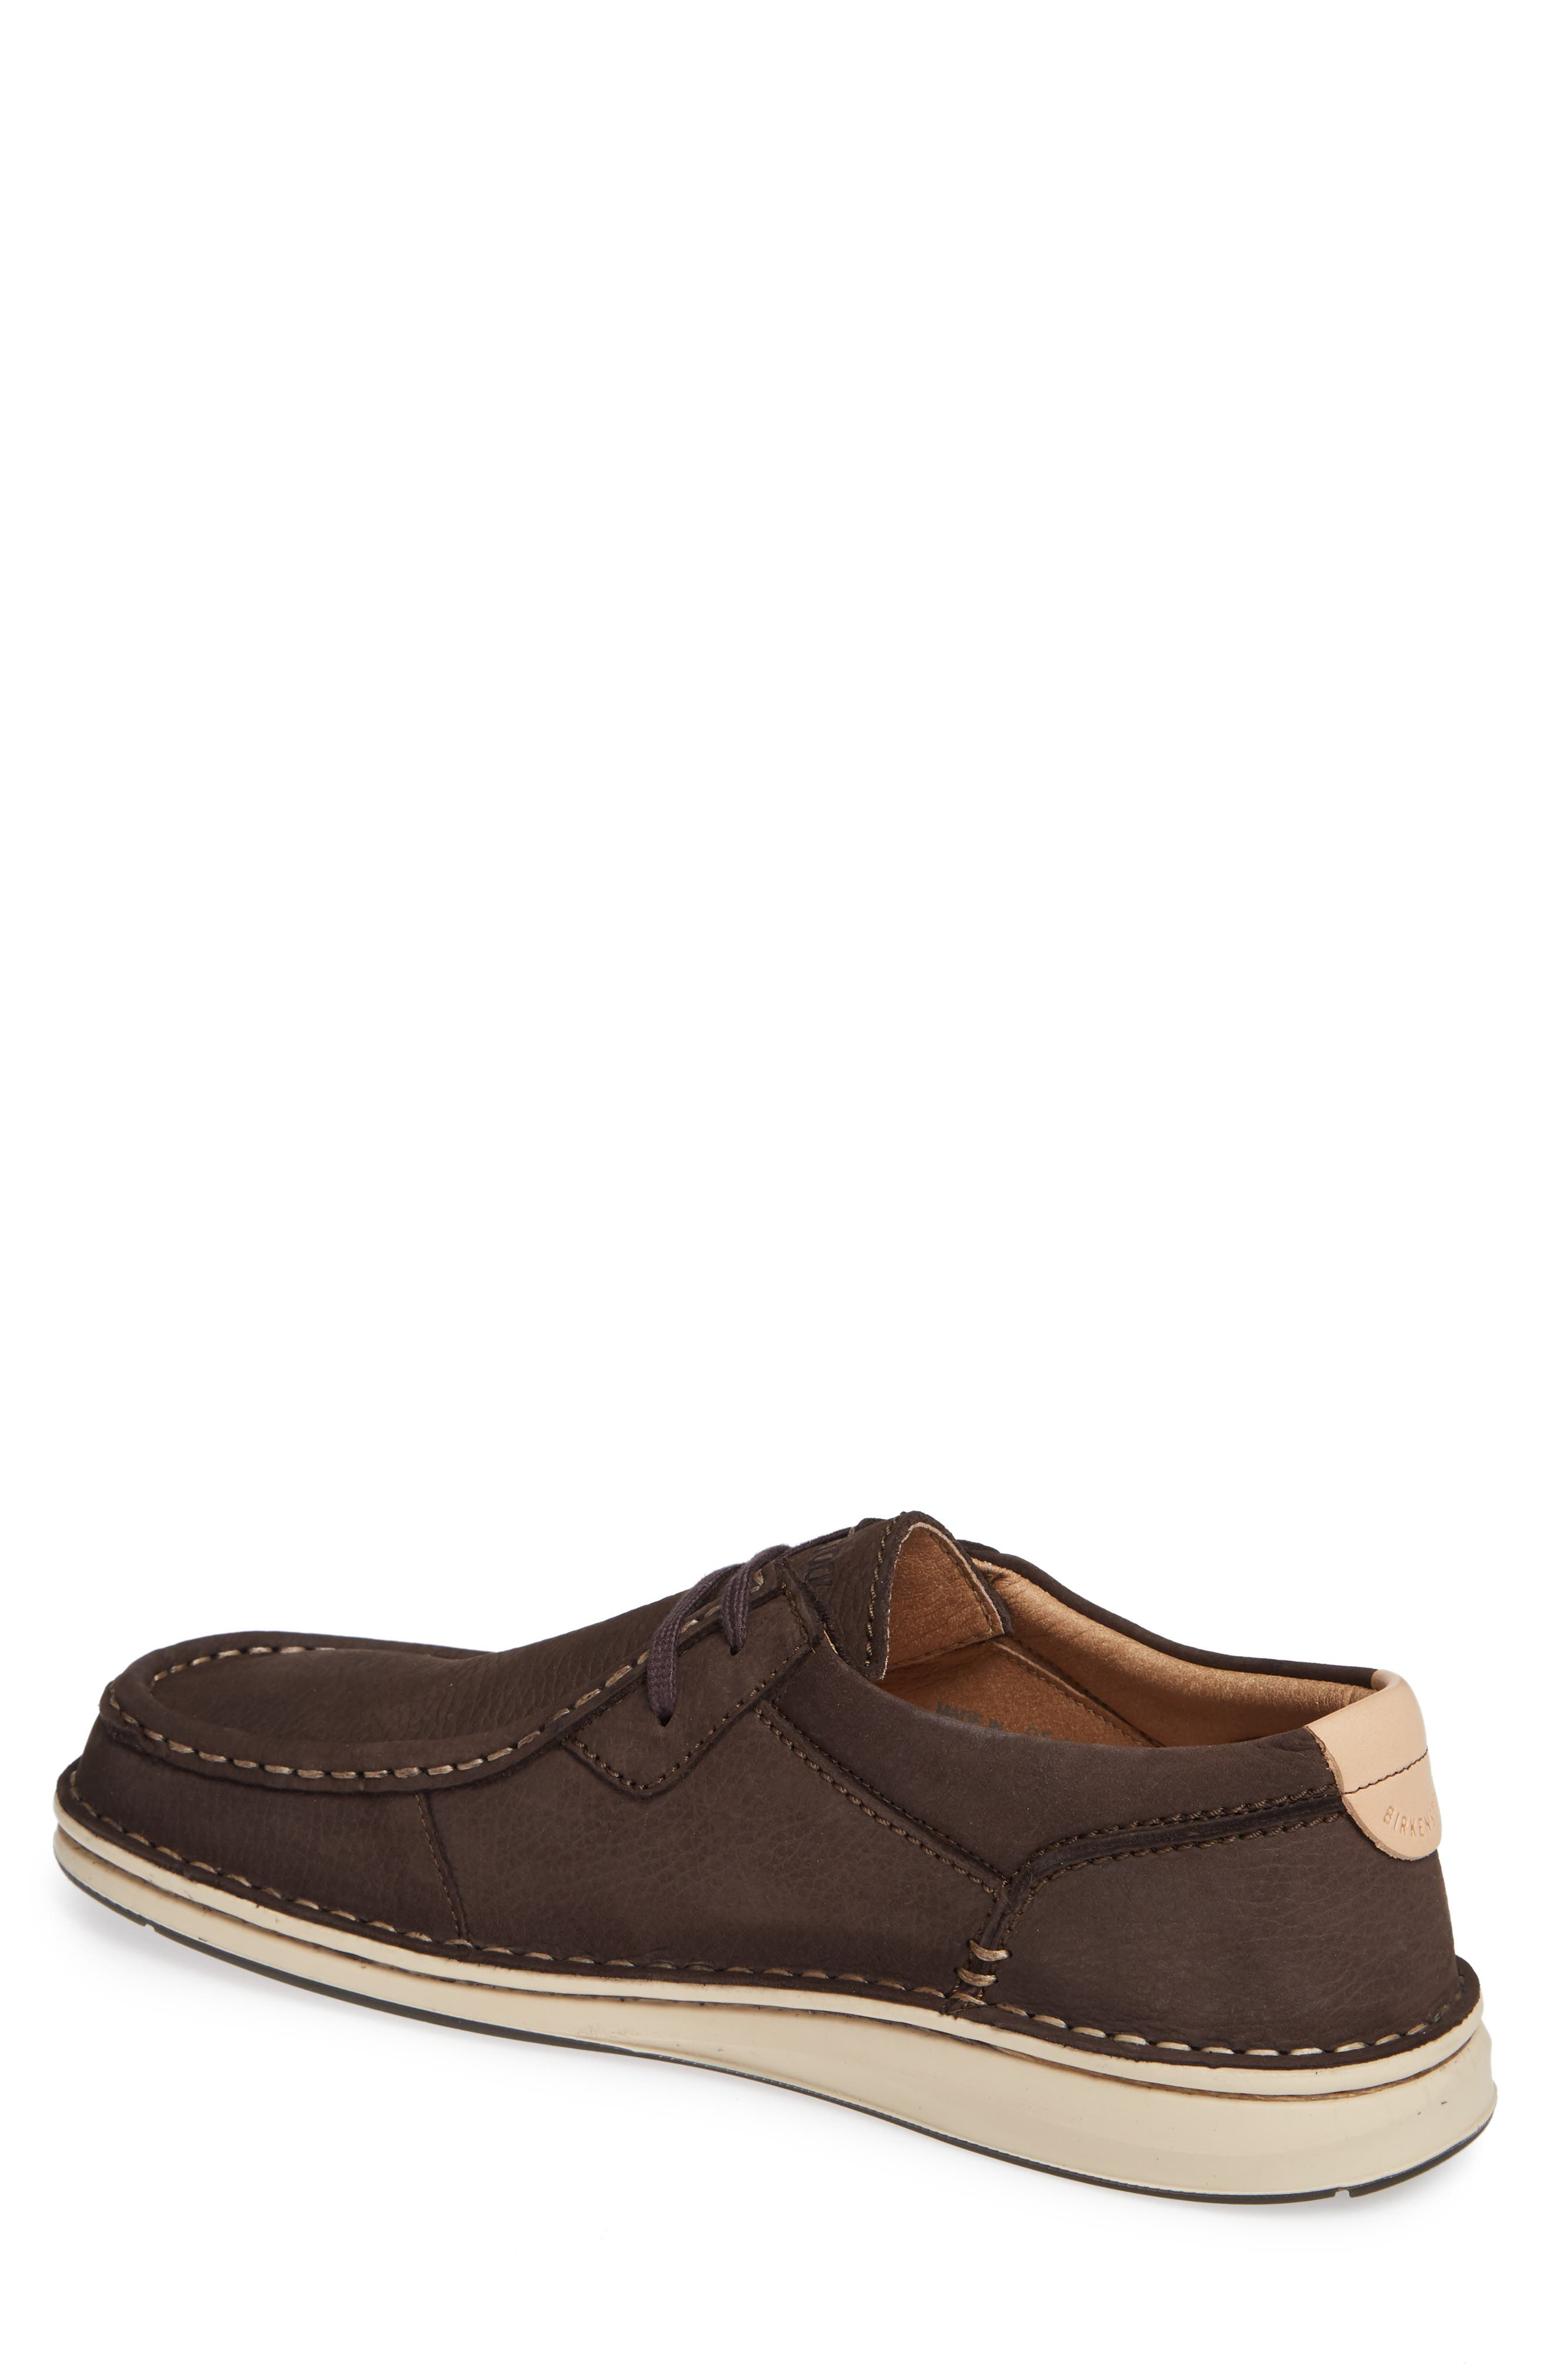 'Pasadena' Lace-Up Moccasin,                             Alternate thumbnail 2, color,                             BROWN